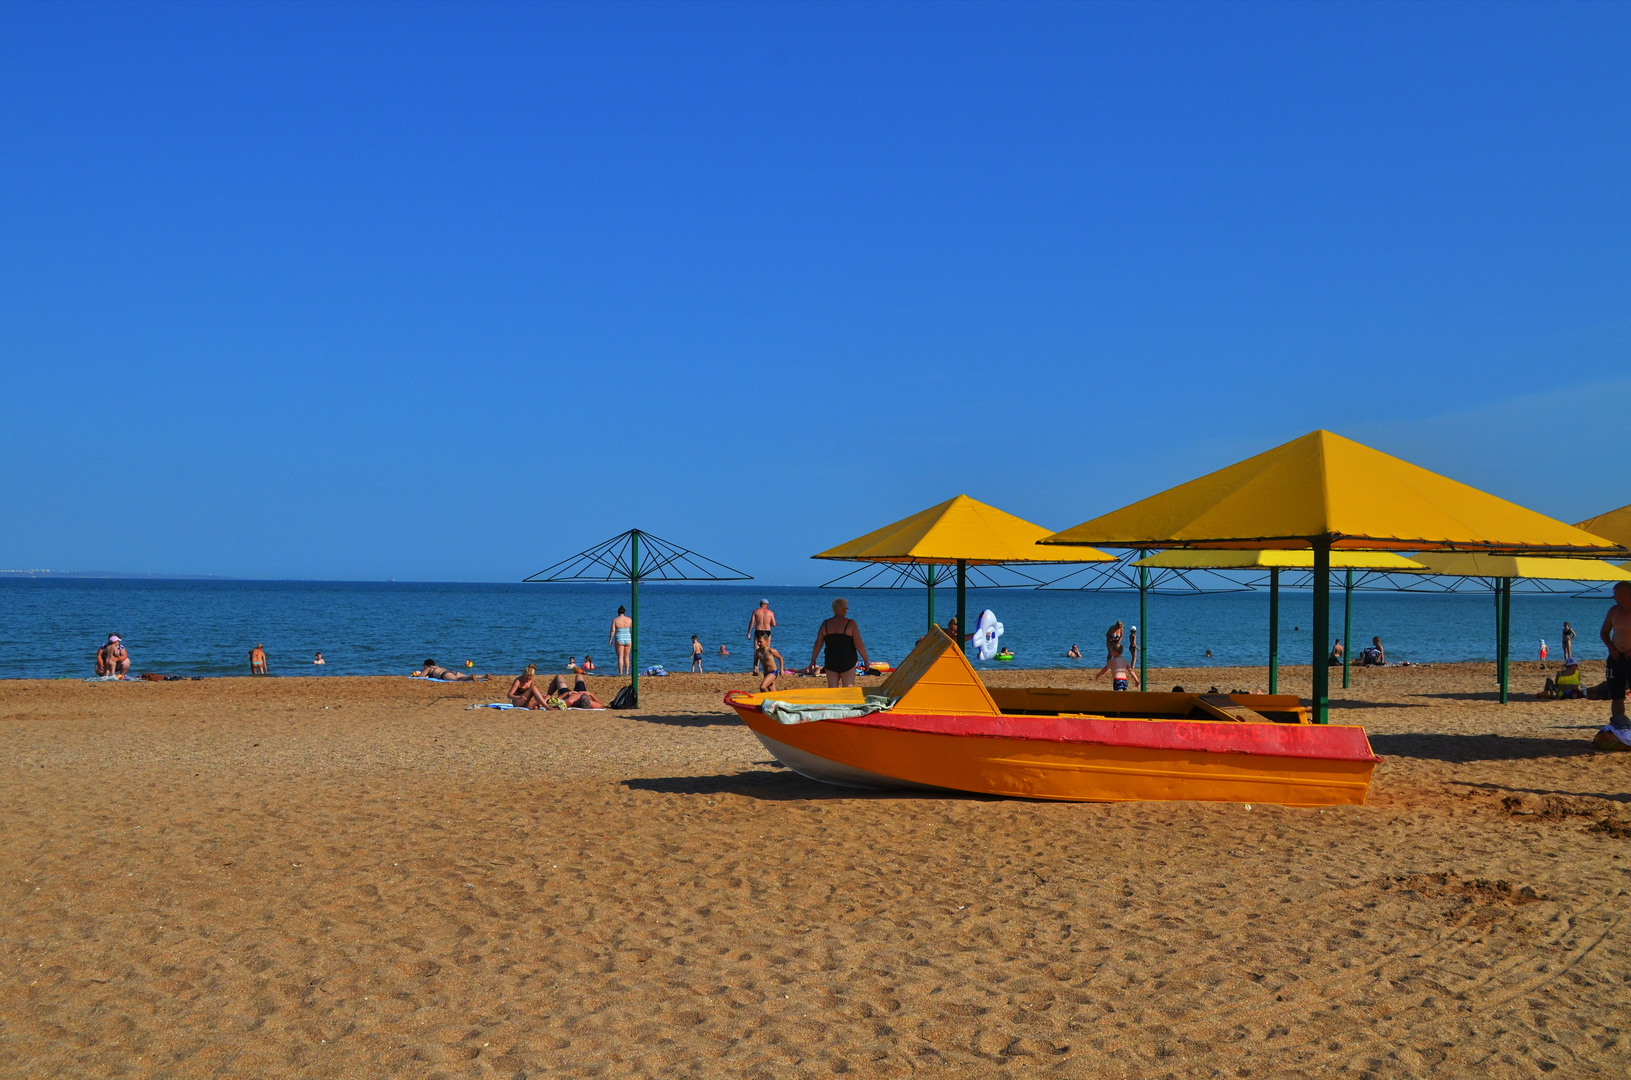 kerch city beach 7